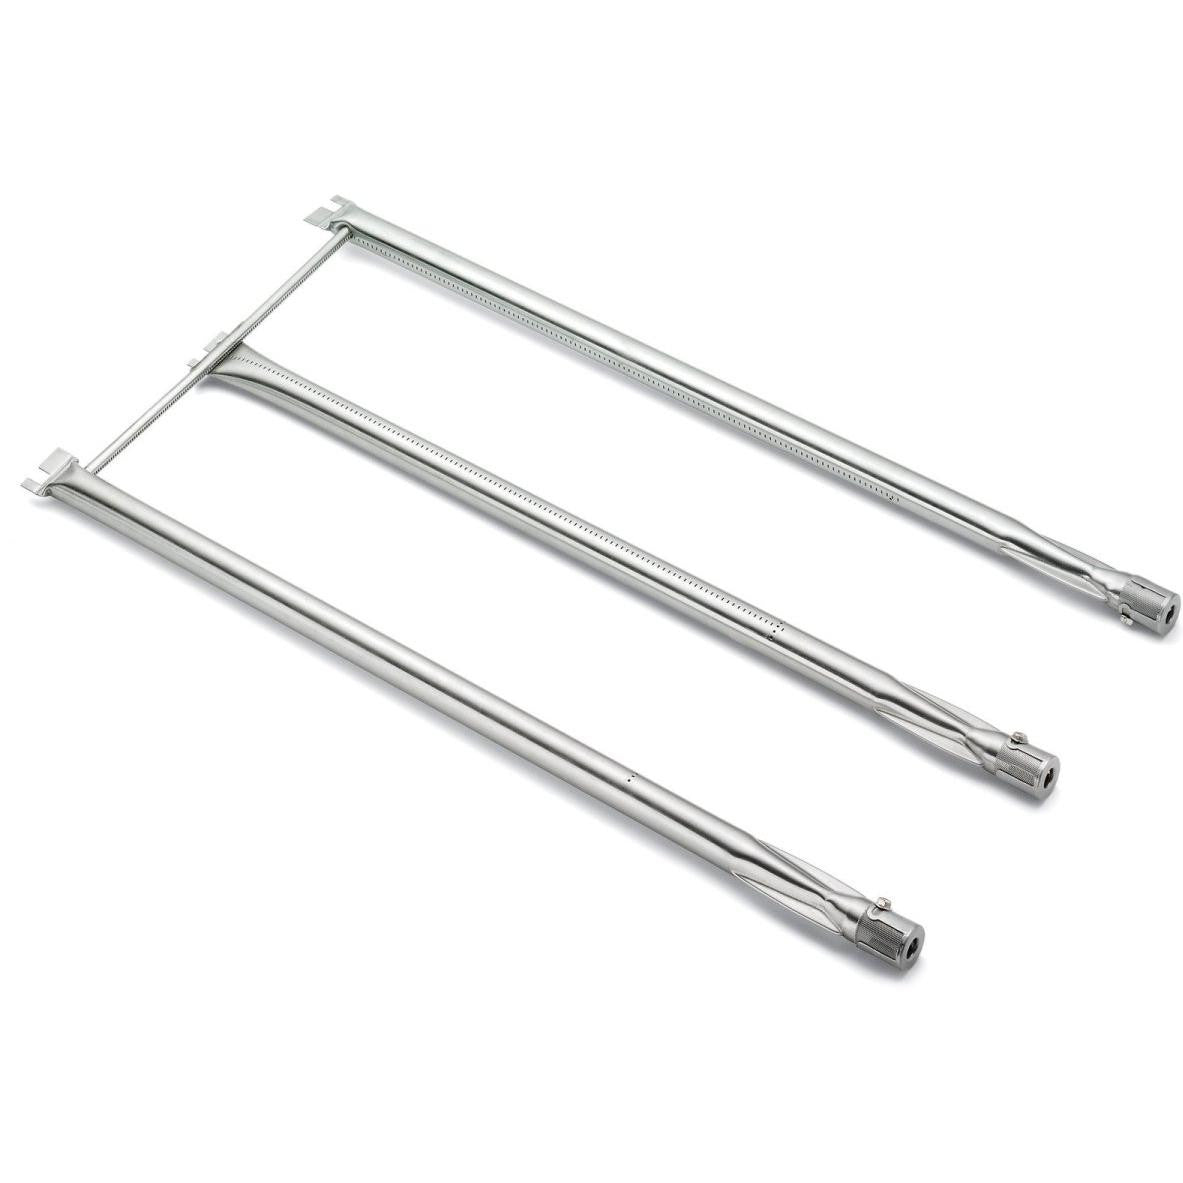 Weber 7506 Stainless Steel Grill Burner Tube Set For Weber Gas Grills - 4-Pieces